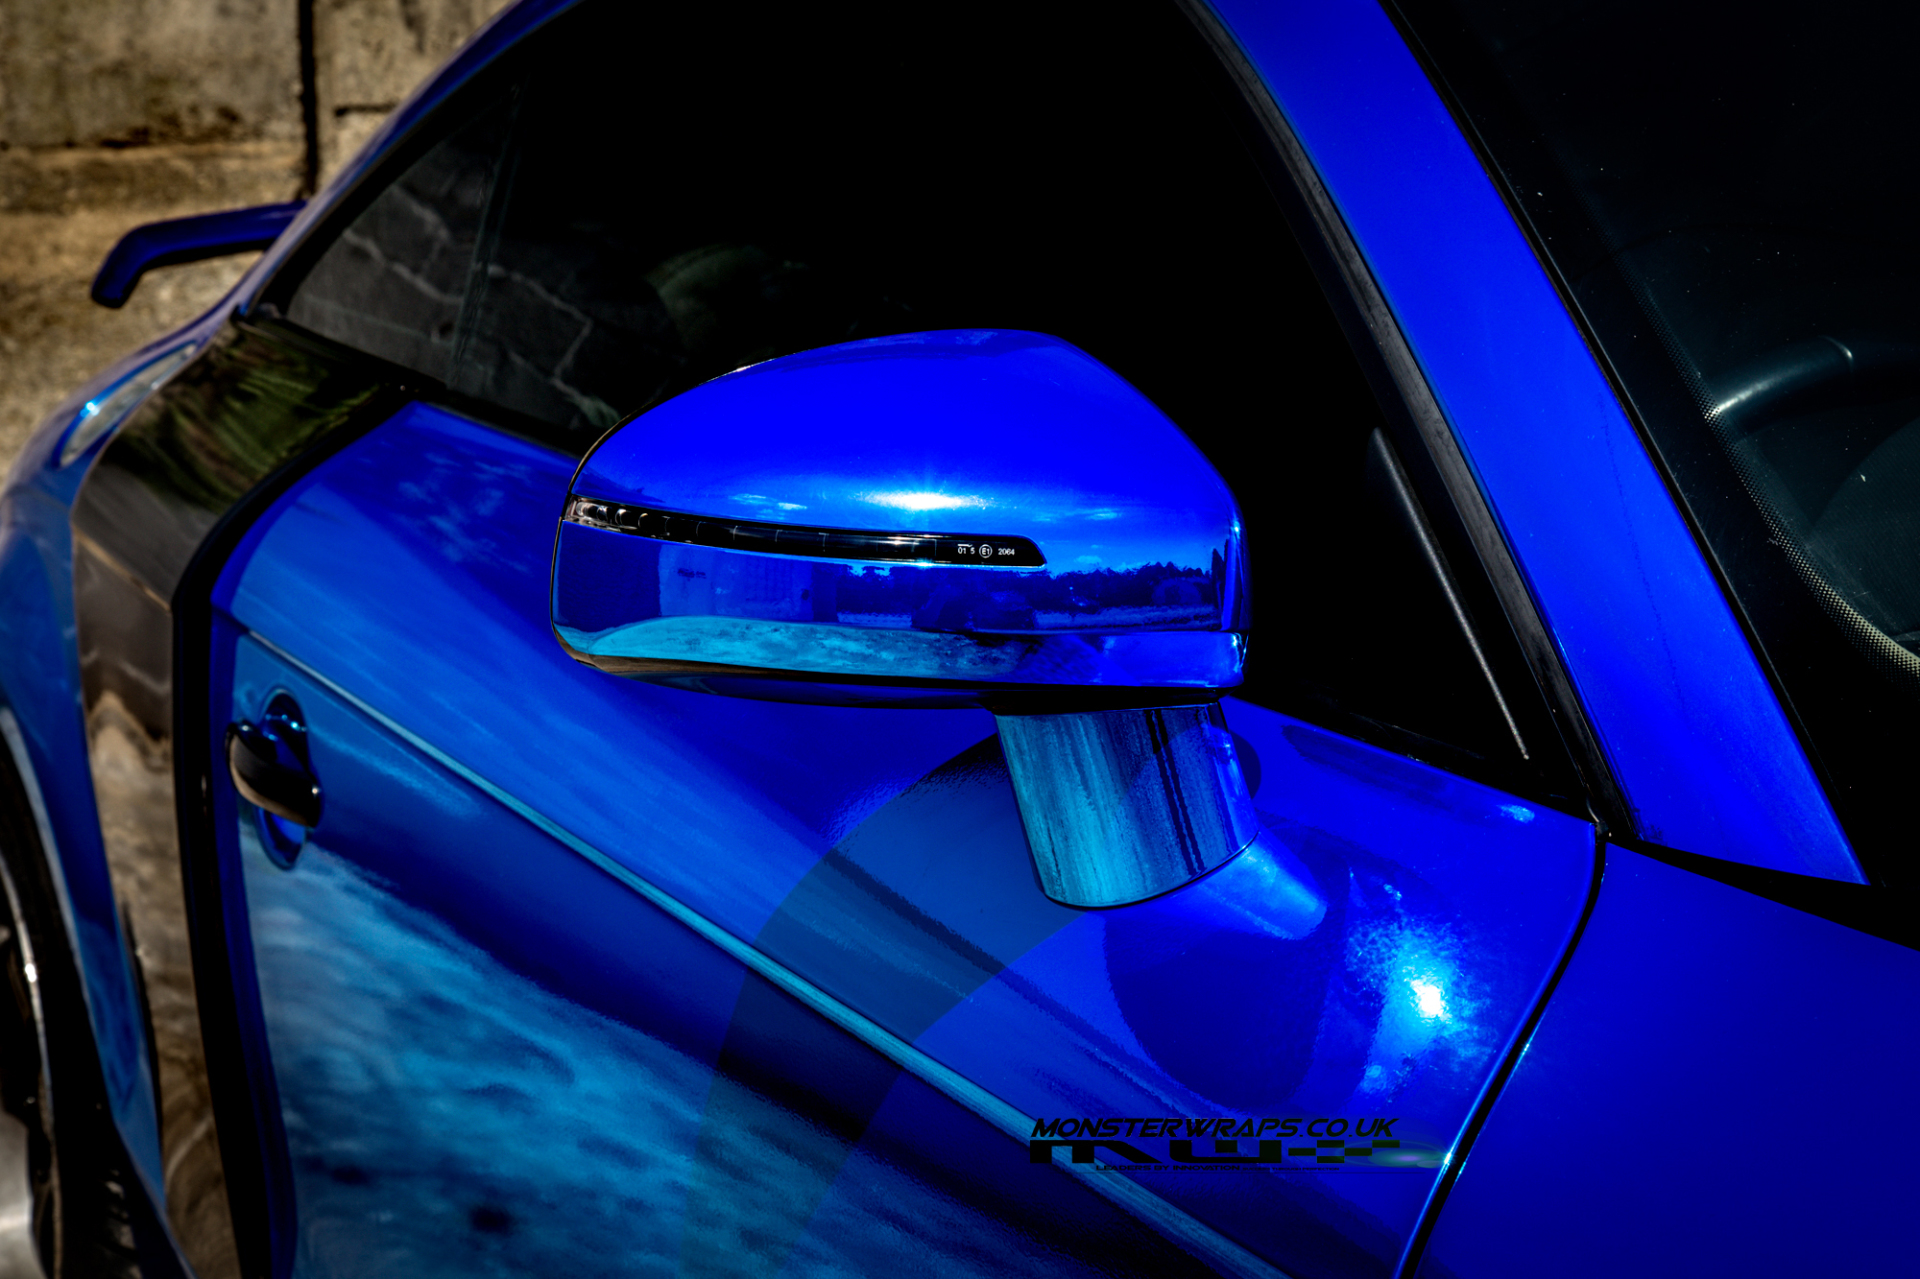 Audi TT mk2 wrapped in blue chrome with gloss black details